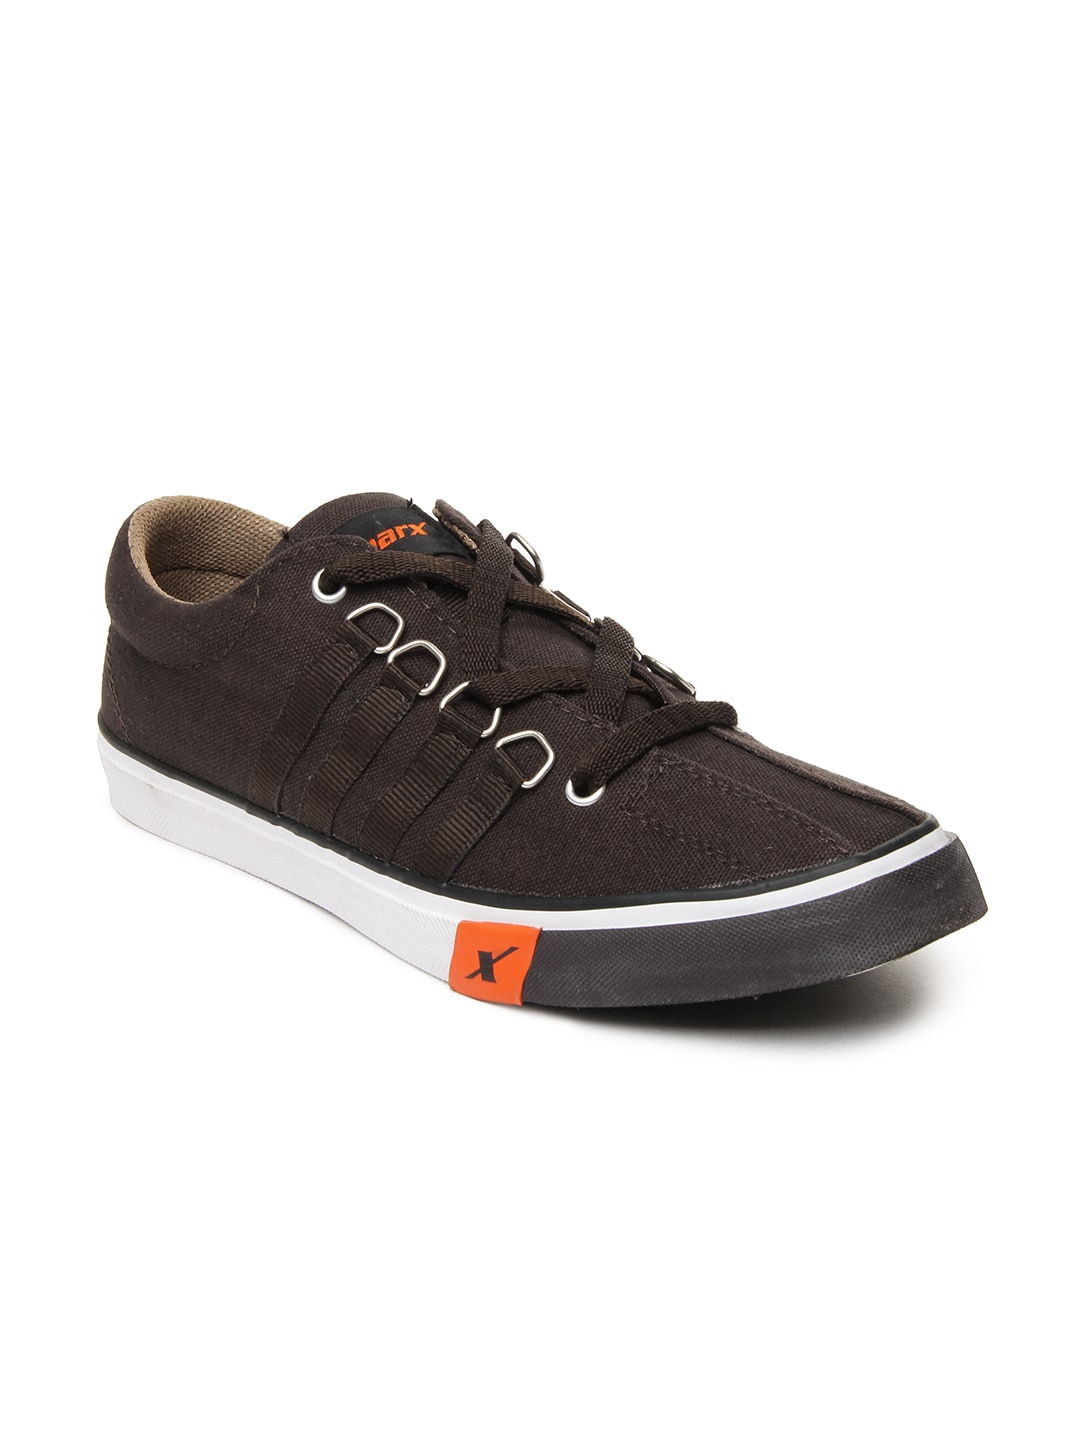 buy sparx brown casual shoes 632 footwear for